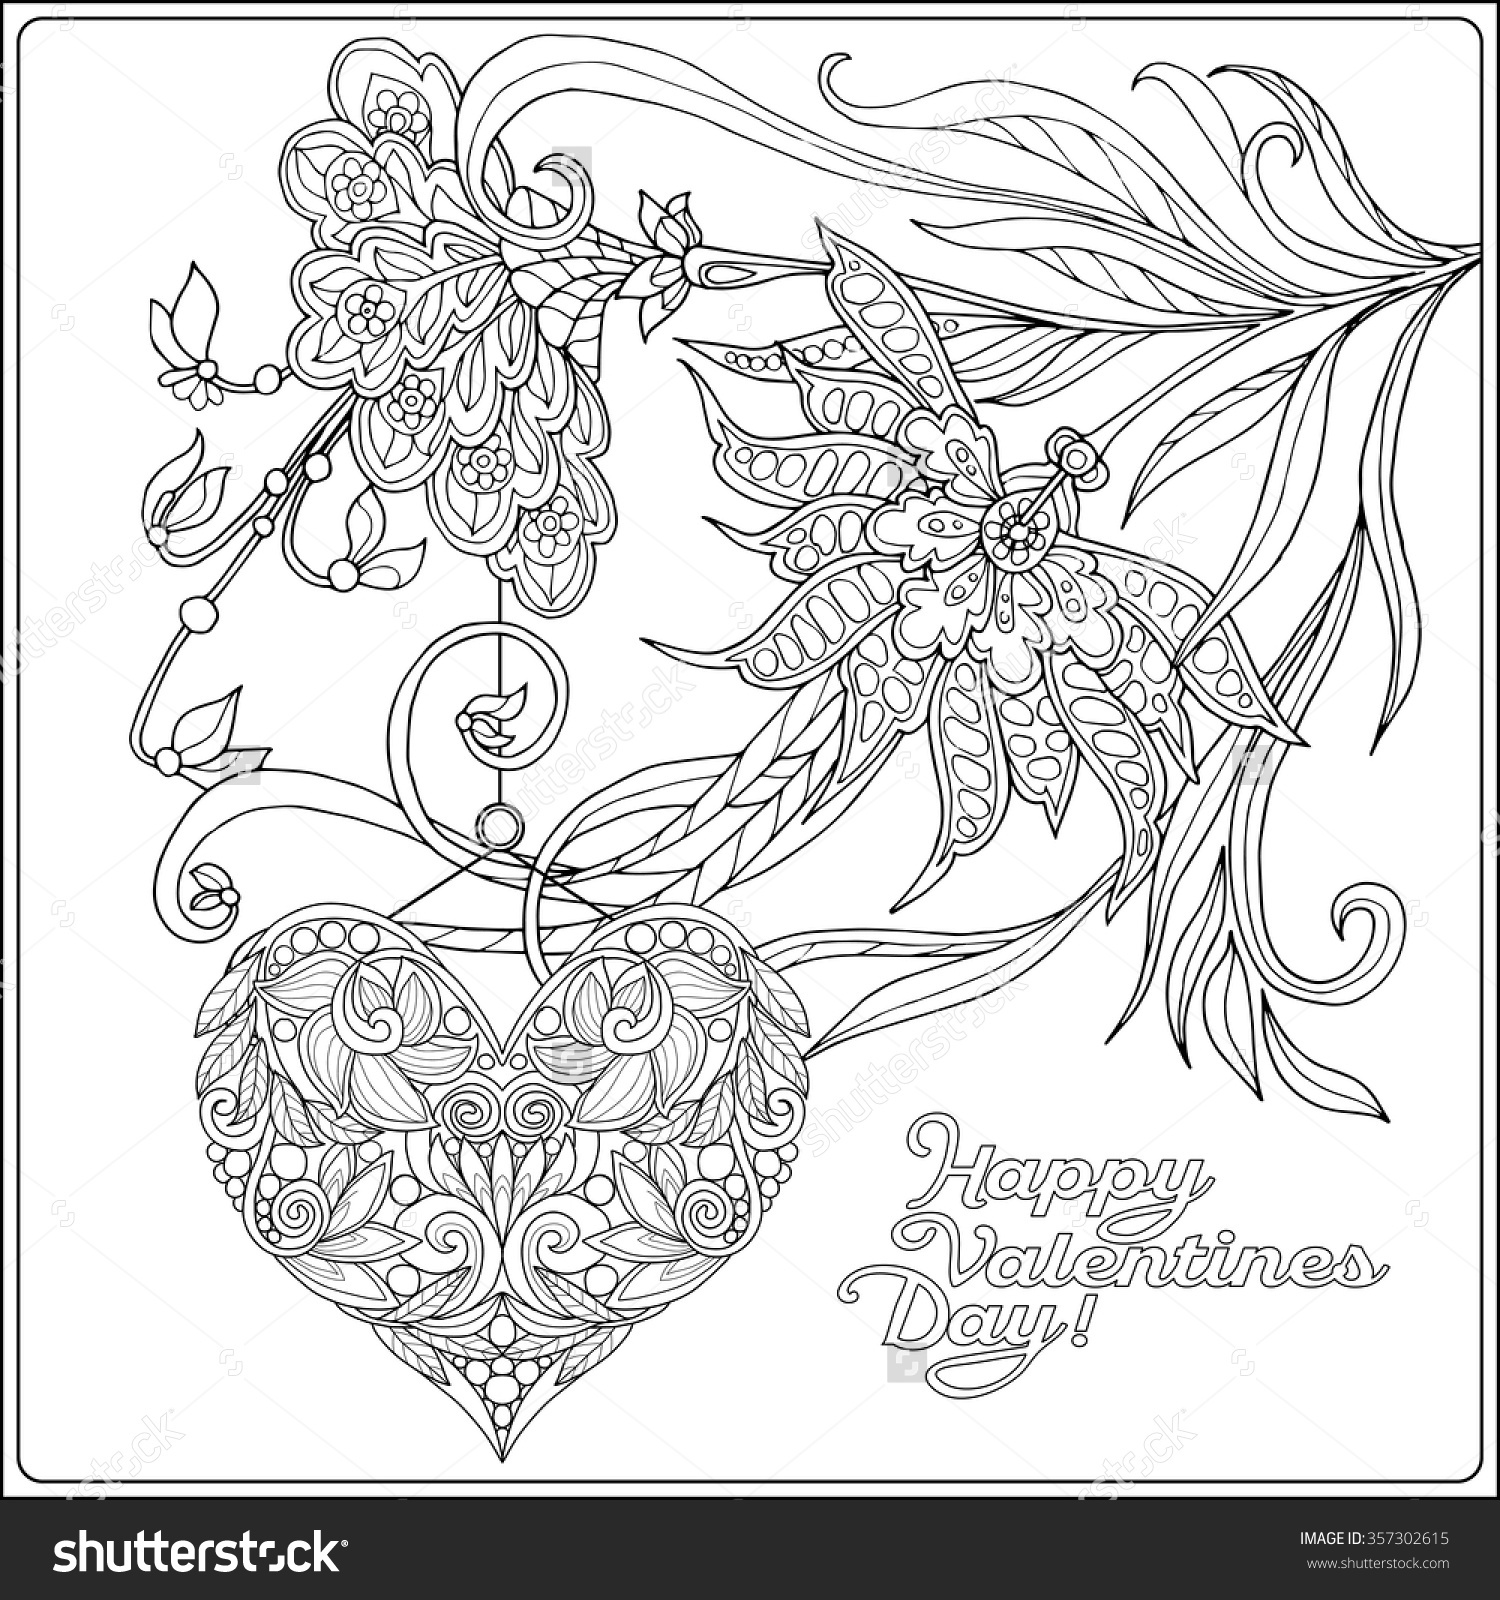 image about Printable Valentine Cards to Color known as Coloring Internet pages For Valentines Working day Playing cards at